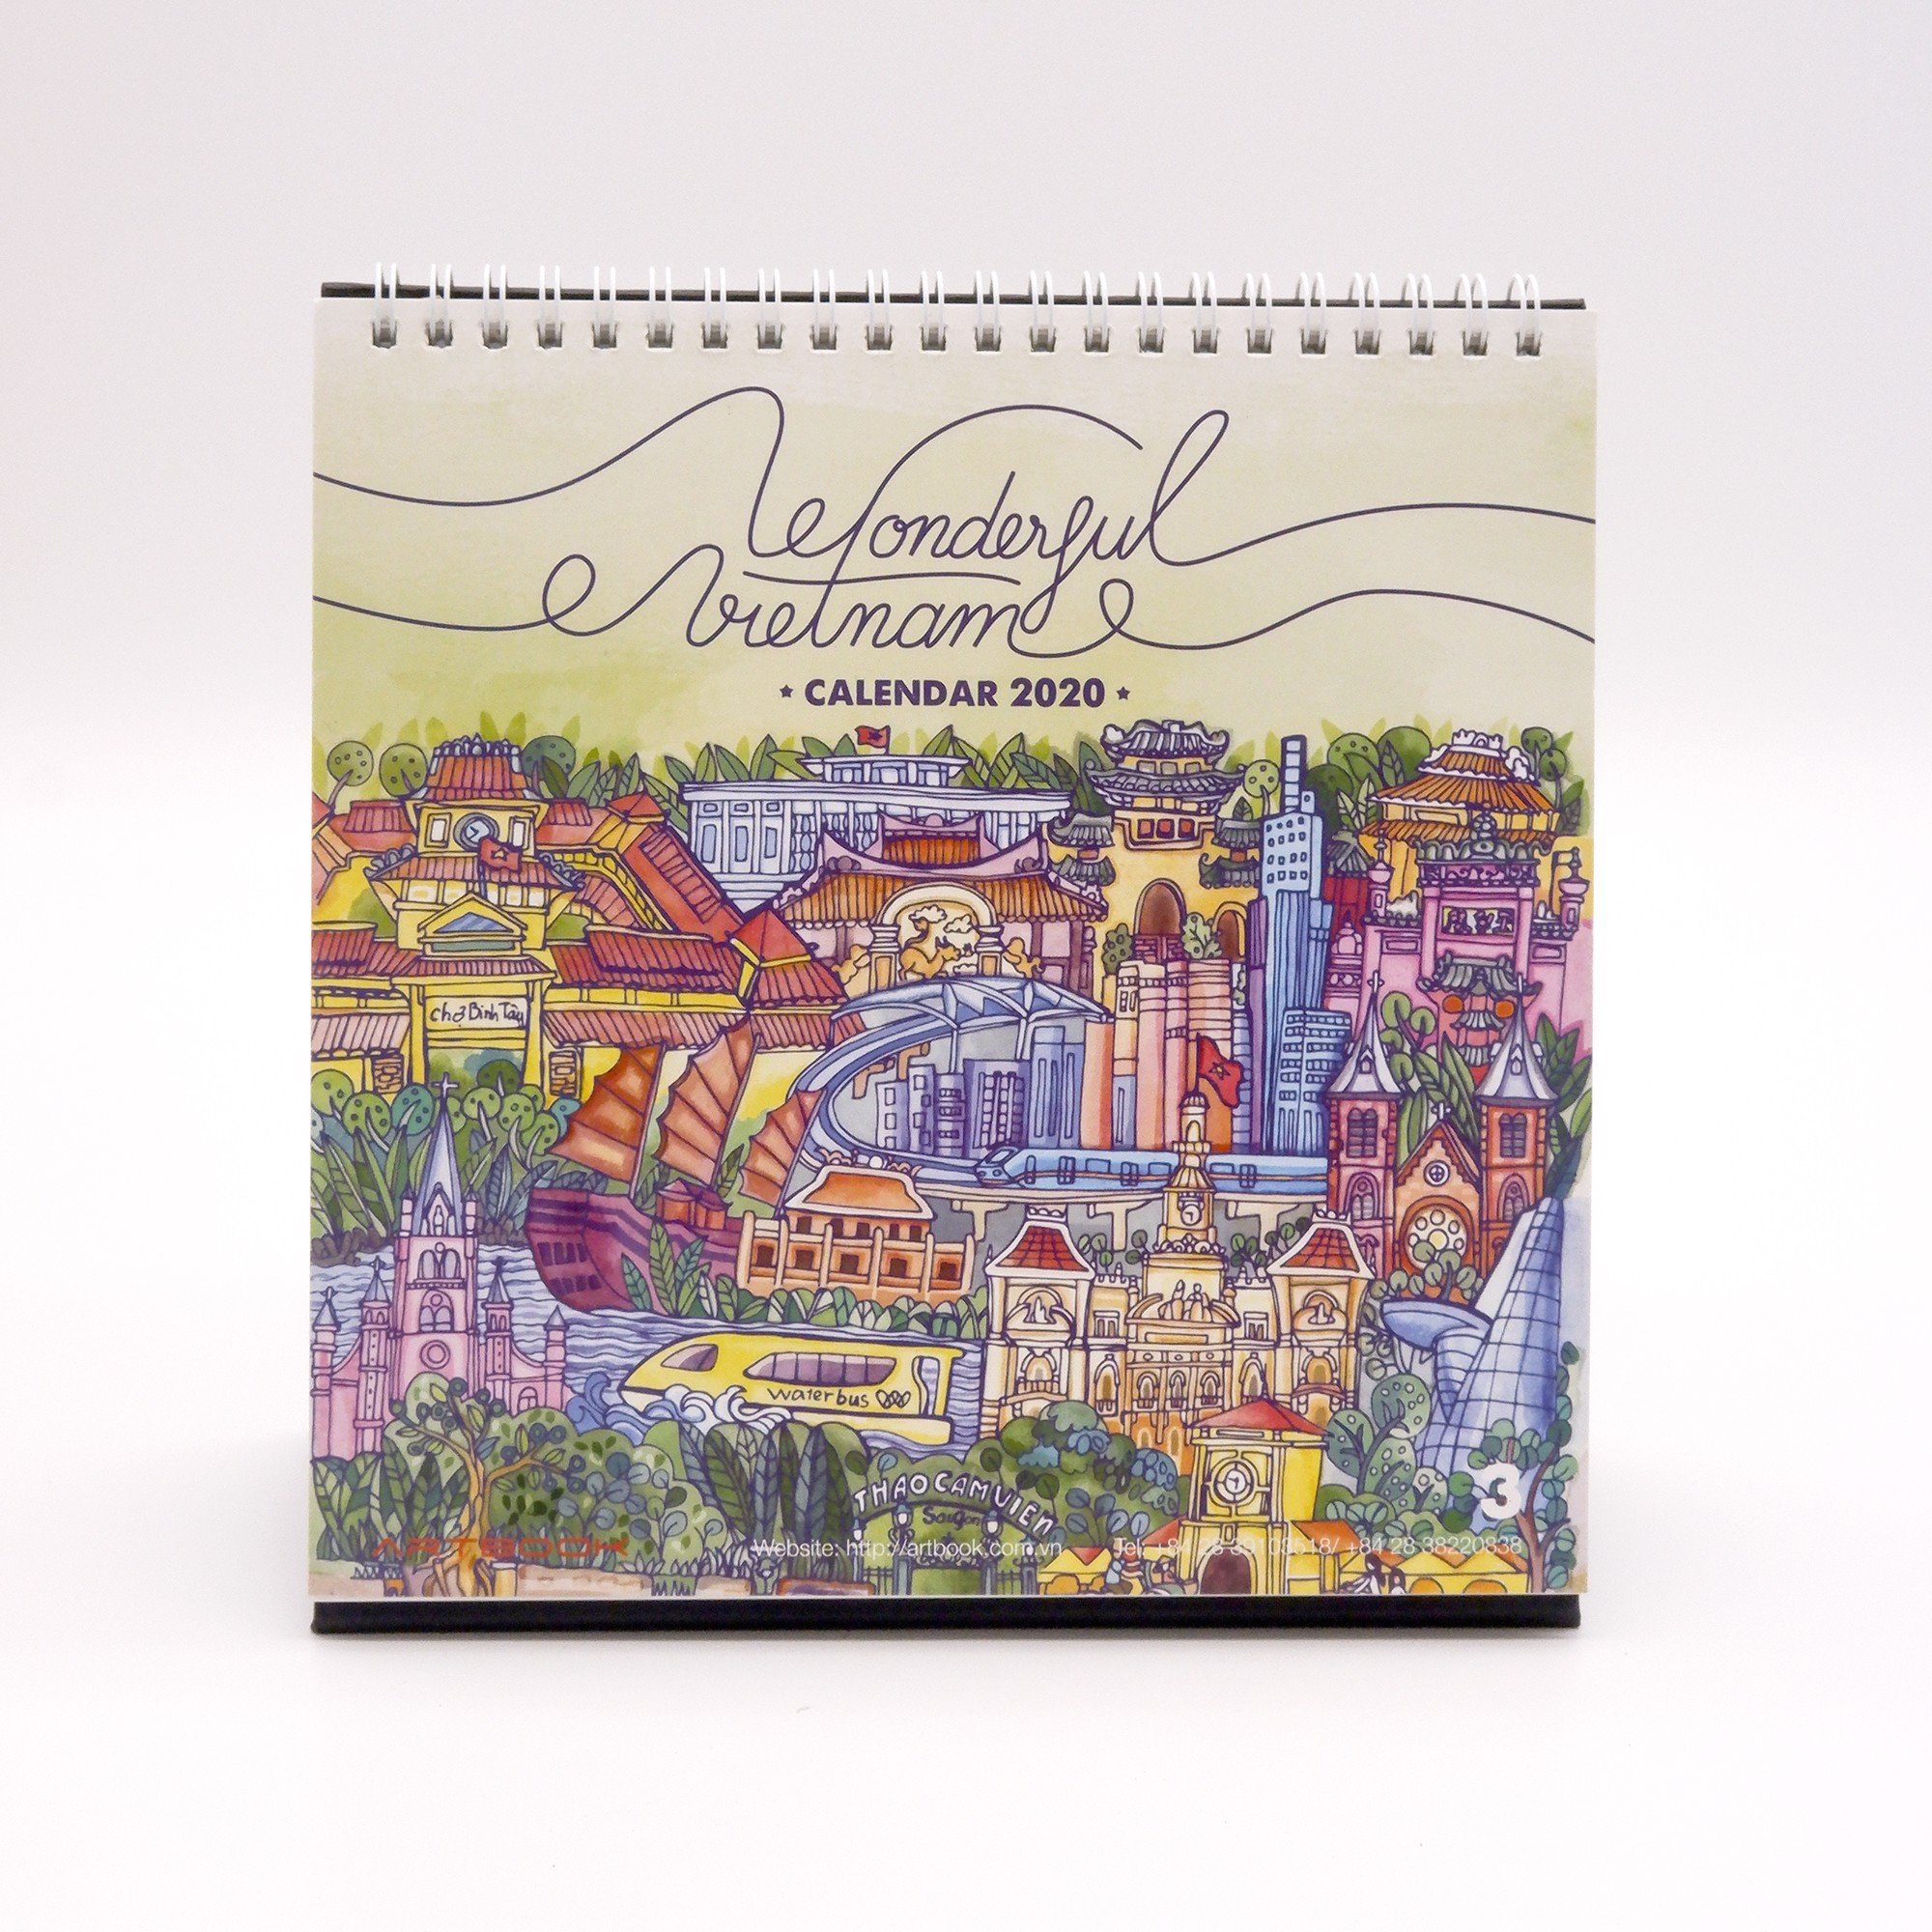 Wonderful Vietnam 3 - 2020 Calendar - Artbook